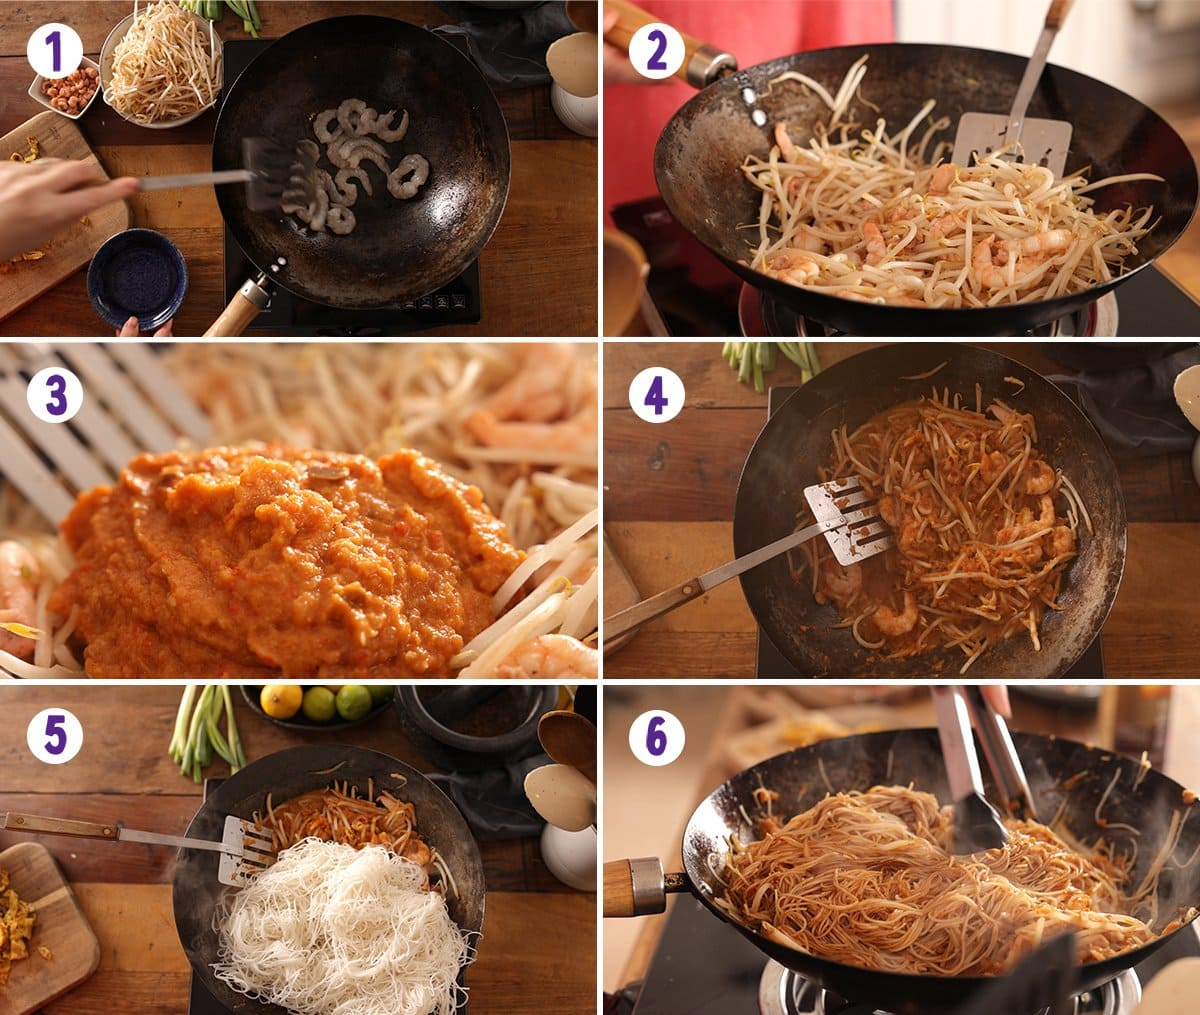 6 image collage showing the process for making Mee Siam